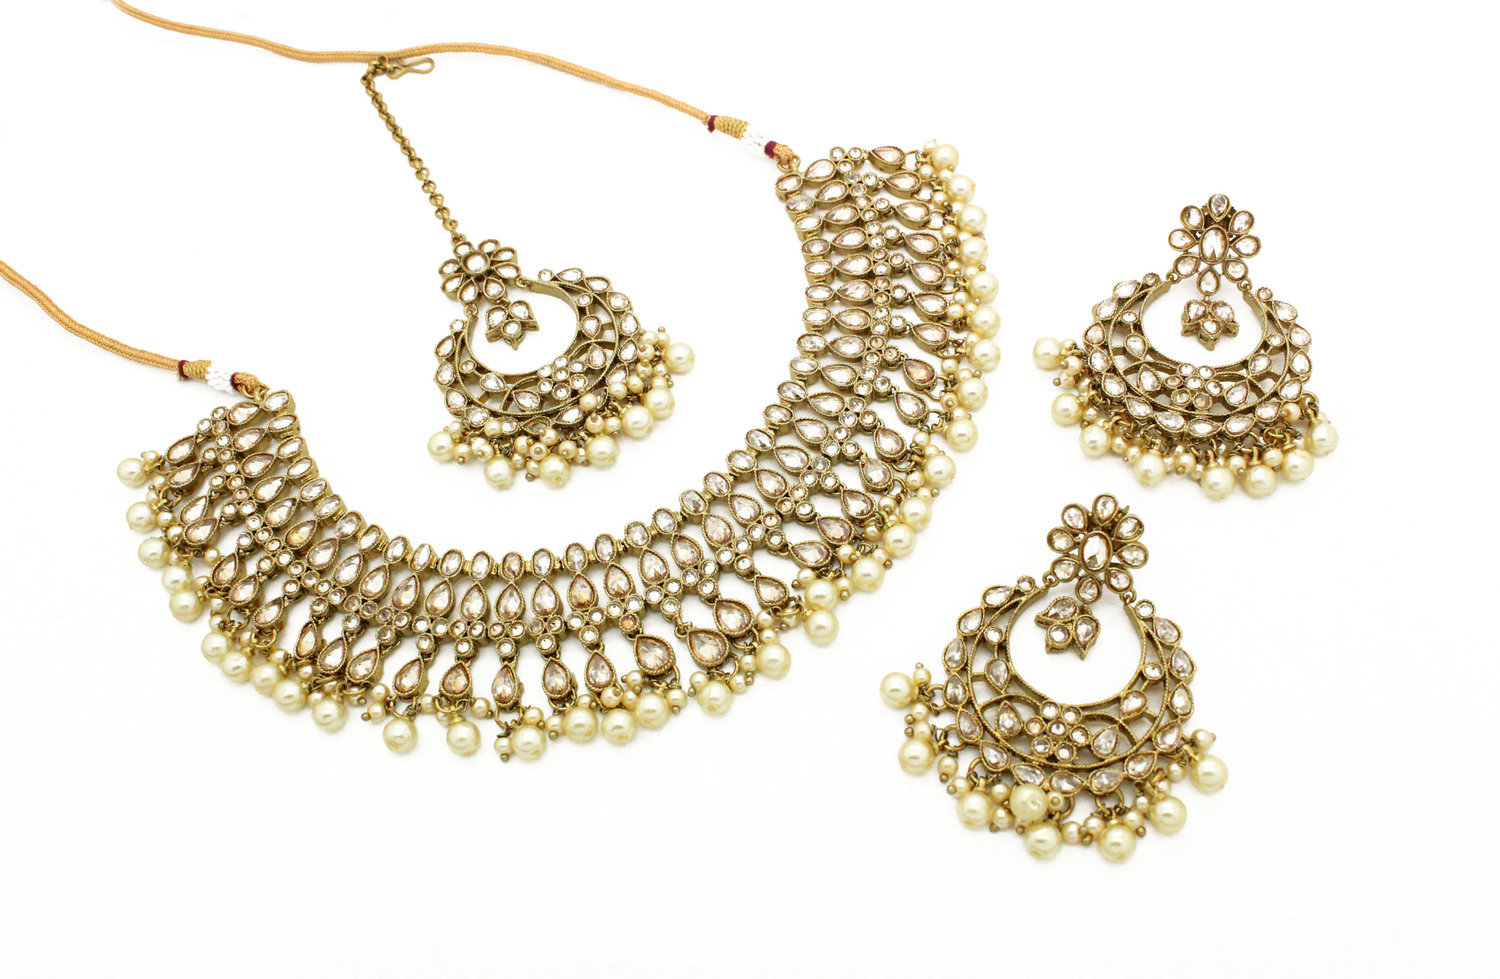 da317cc02 Antique Gold 'ARUSHI' Necklace Jewellery Set with Tikka Earrings — Glimour  Jewellery